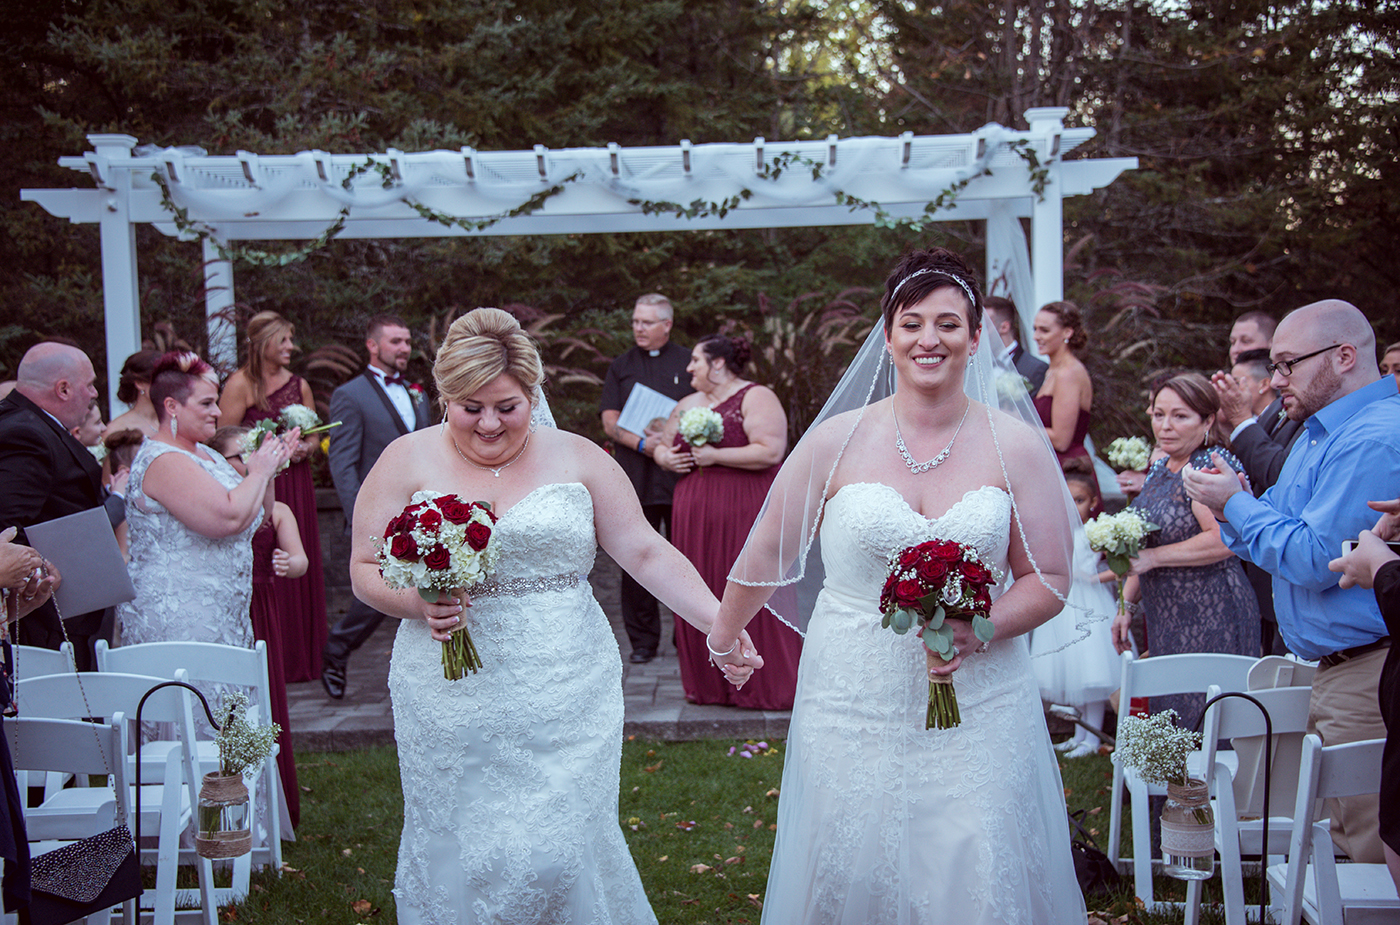 All Occasions Photography Albany NY - Wedding Photography Brides Walking Down Aisle